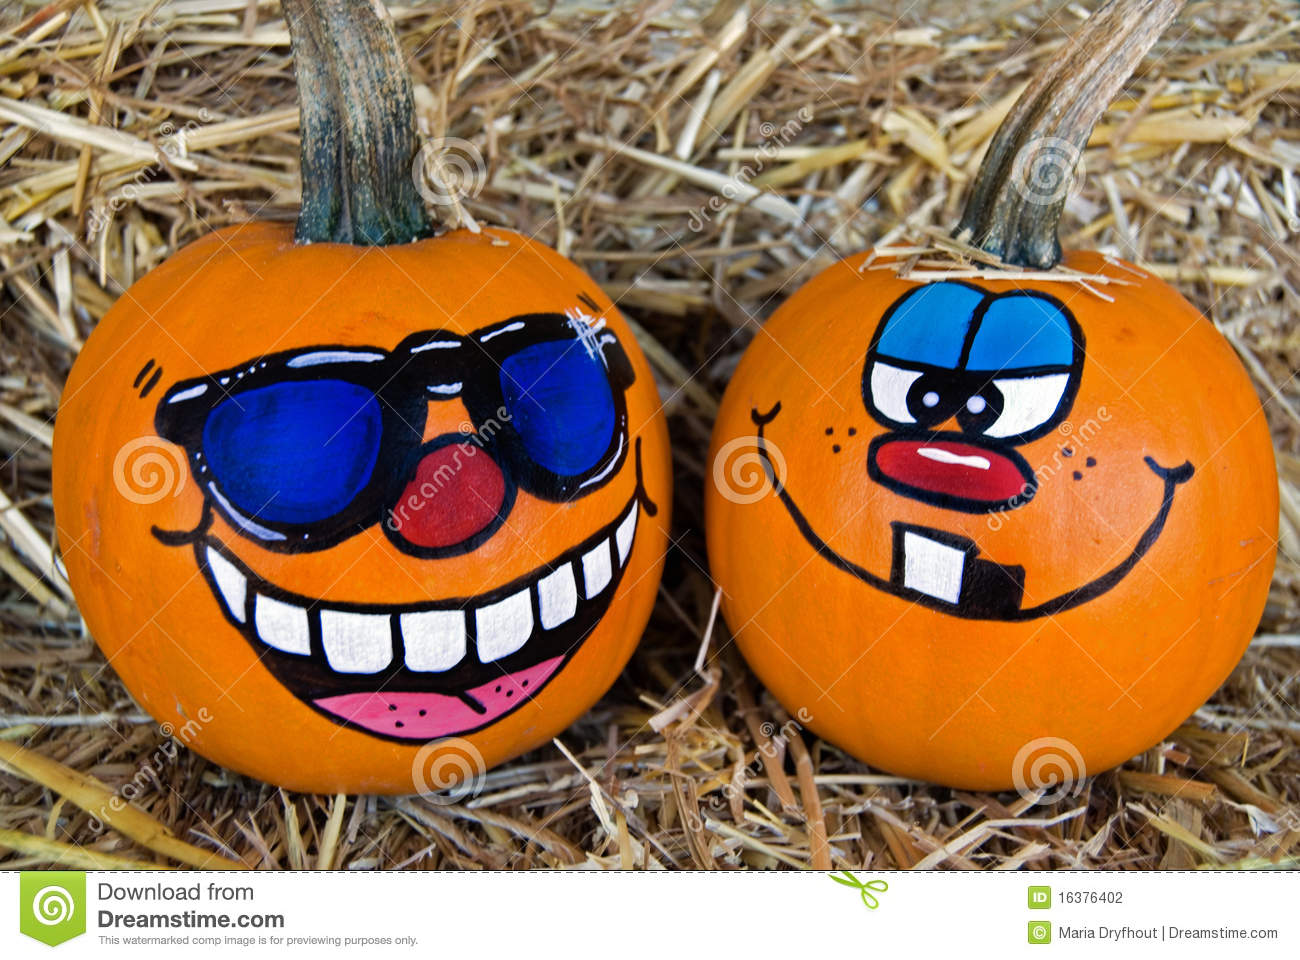 Funny faces painted on pumpkins stock photography image for Funny pumpkin drawings